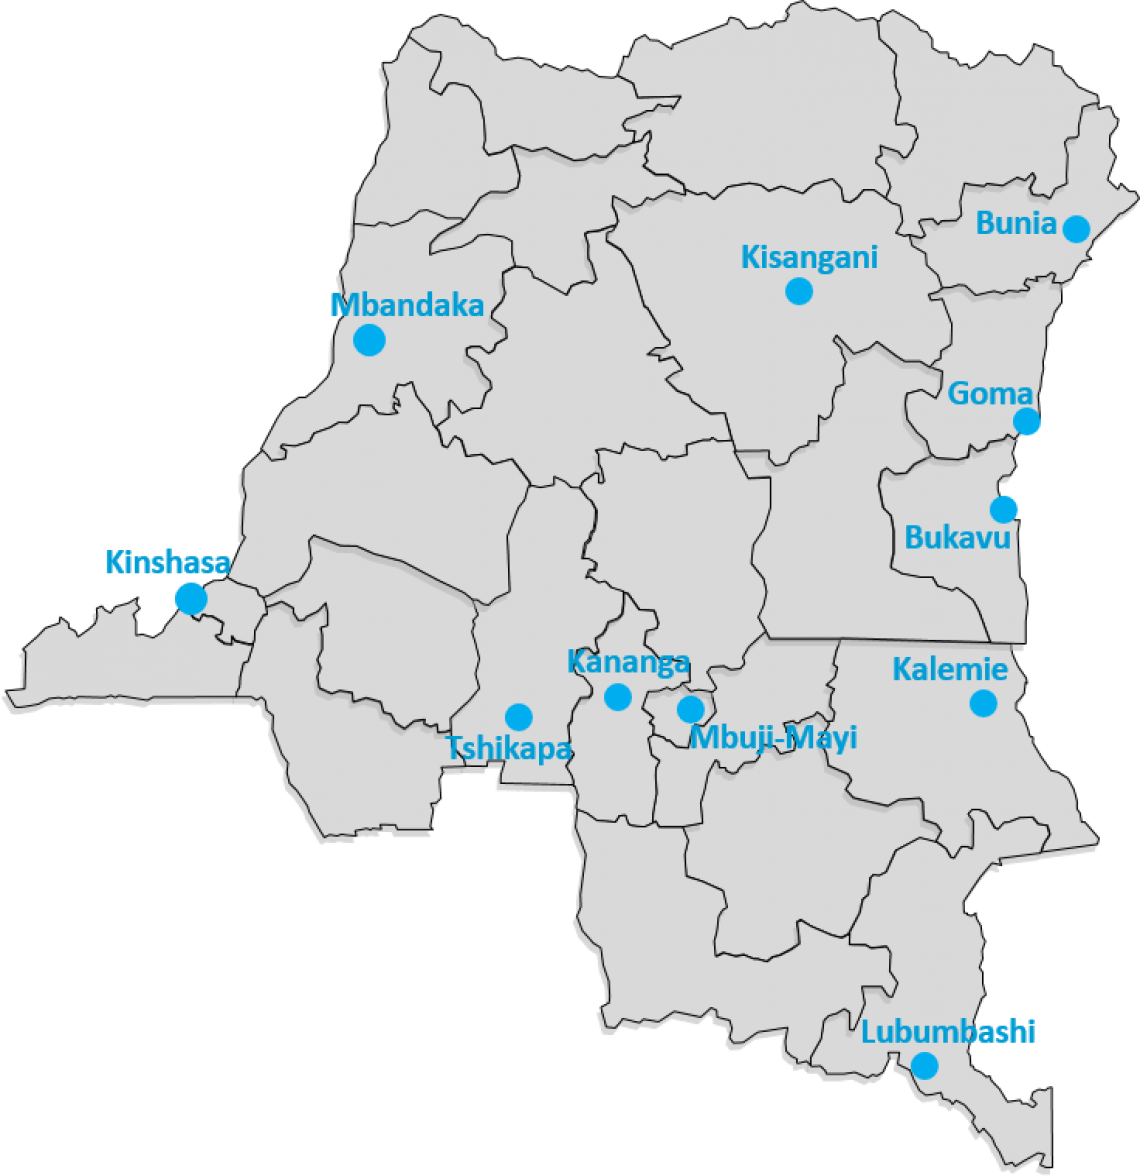 UNICEF offices in the Democratic Republic of Congo